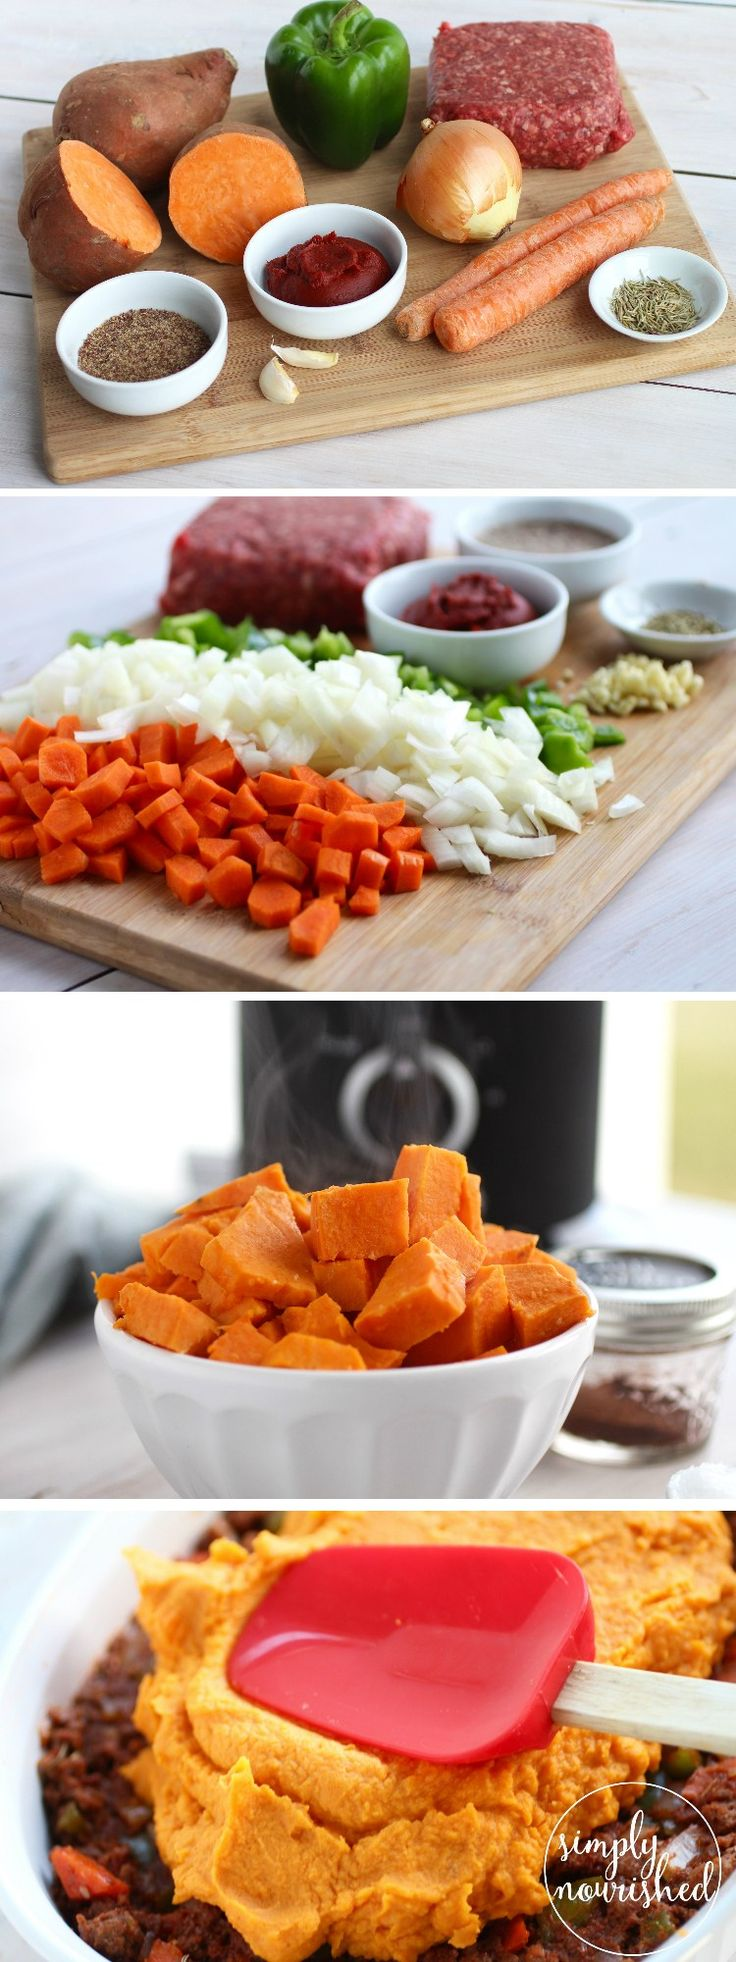 Shepherd's Pie with Sweet Potato Topping | paleo, gluten-free, grain-free, dairy-free, whole 30 | http://simplynourishedrecipes.com/shepherds-pie/